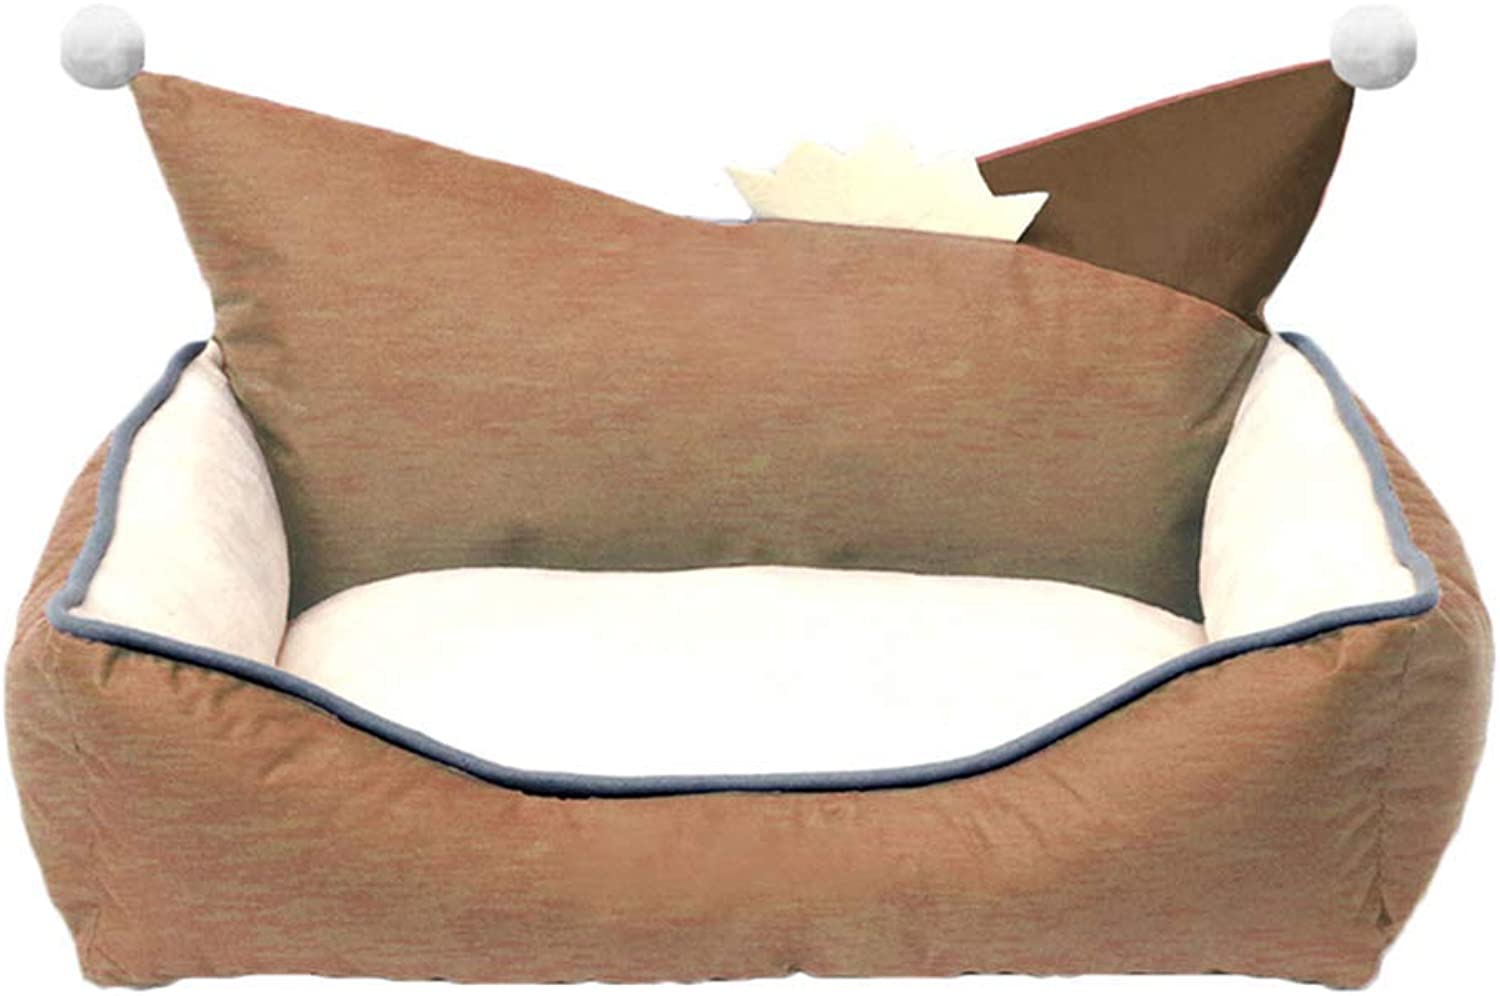 KYCD Dog Nest,Dog Bed,Soft Washable Warm Pet Sofa Cat Bed Cushion with EPE Pearl Cotton Lining,Four Seasons Usable,for Small Medium Dogs, Nonslip Oxford Cloth,Khaki (Size   50x40x20cm)